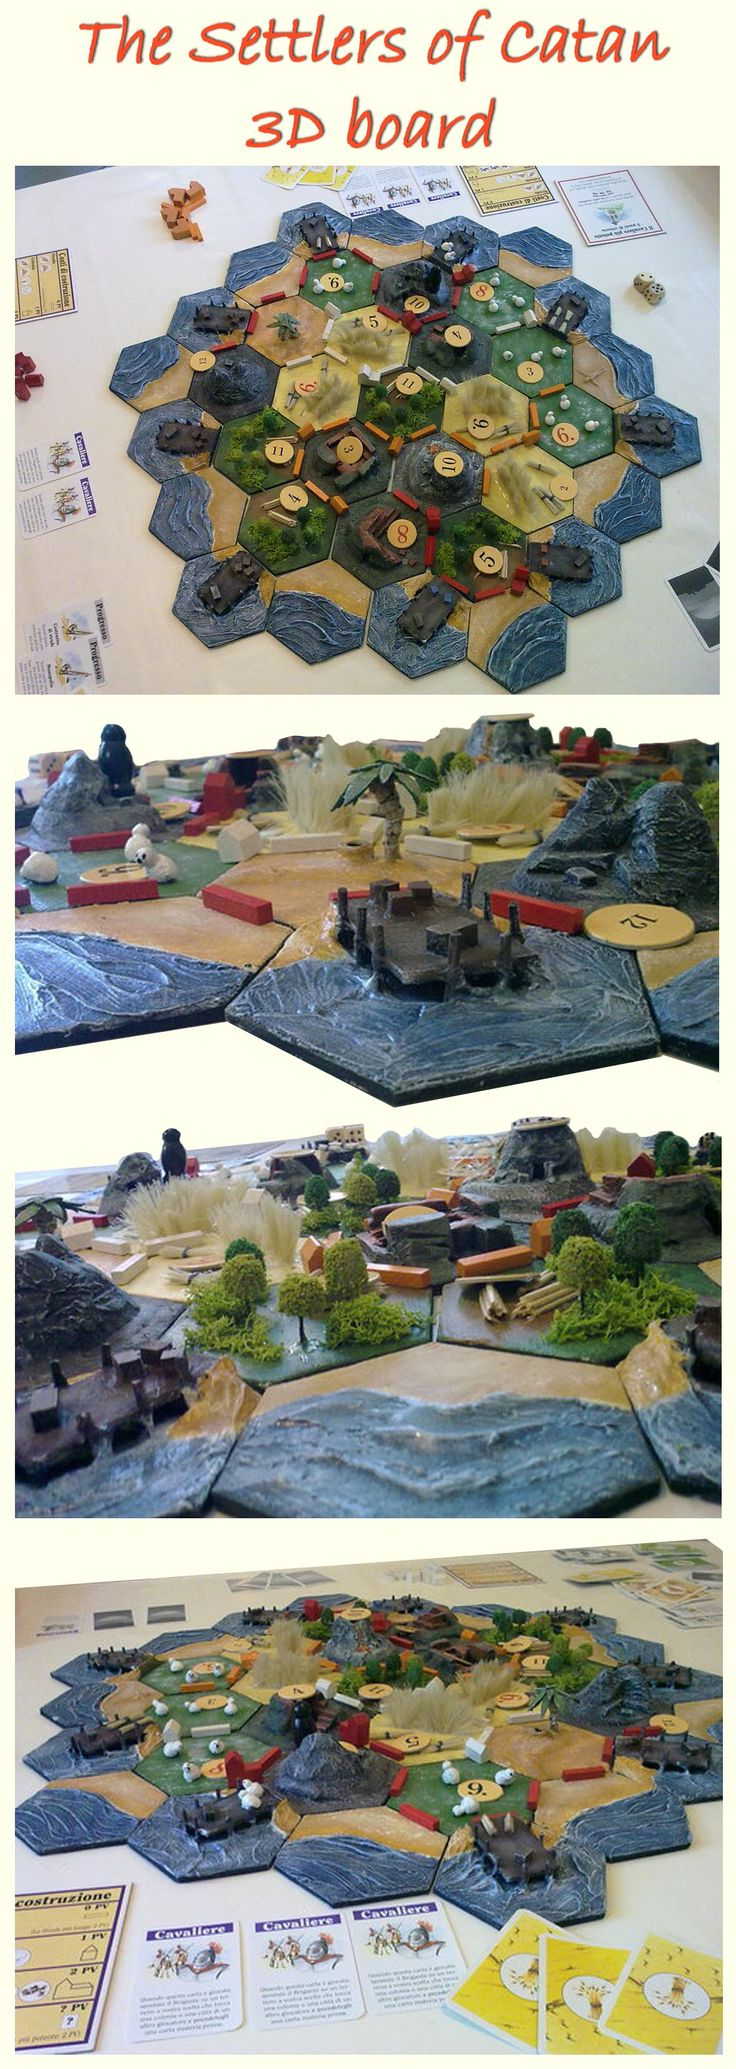 The settlers of Catan, 3D board, #boardgame , #accessory , #model. You want (120€+shipping) contact me enricodiblasio@gmail.com